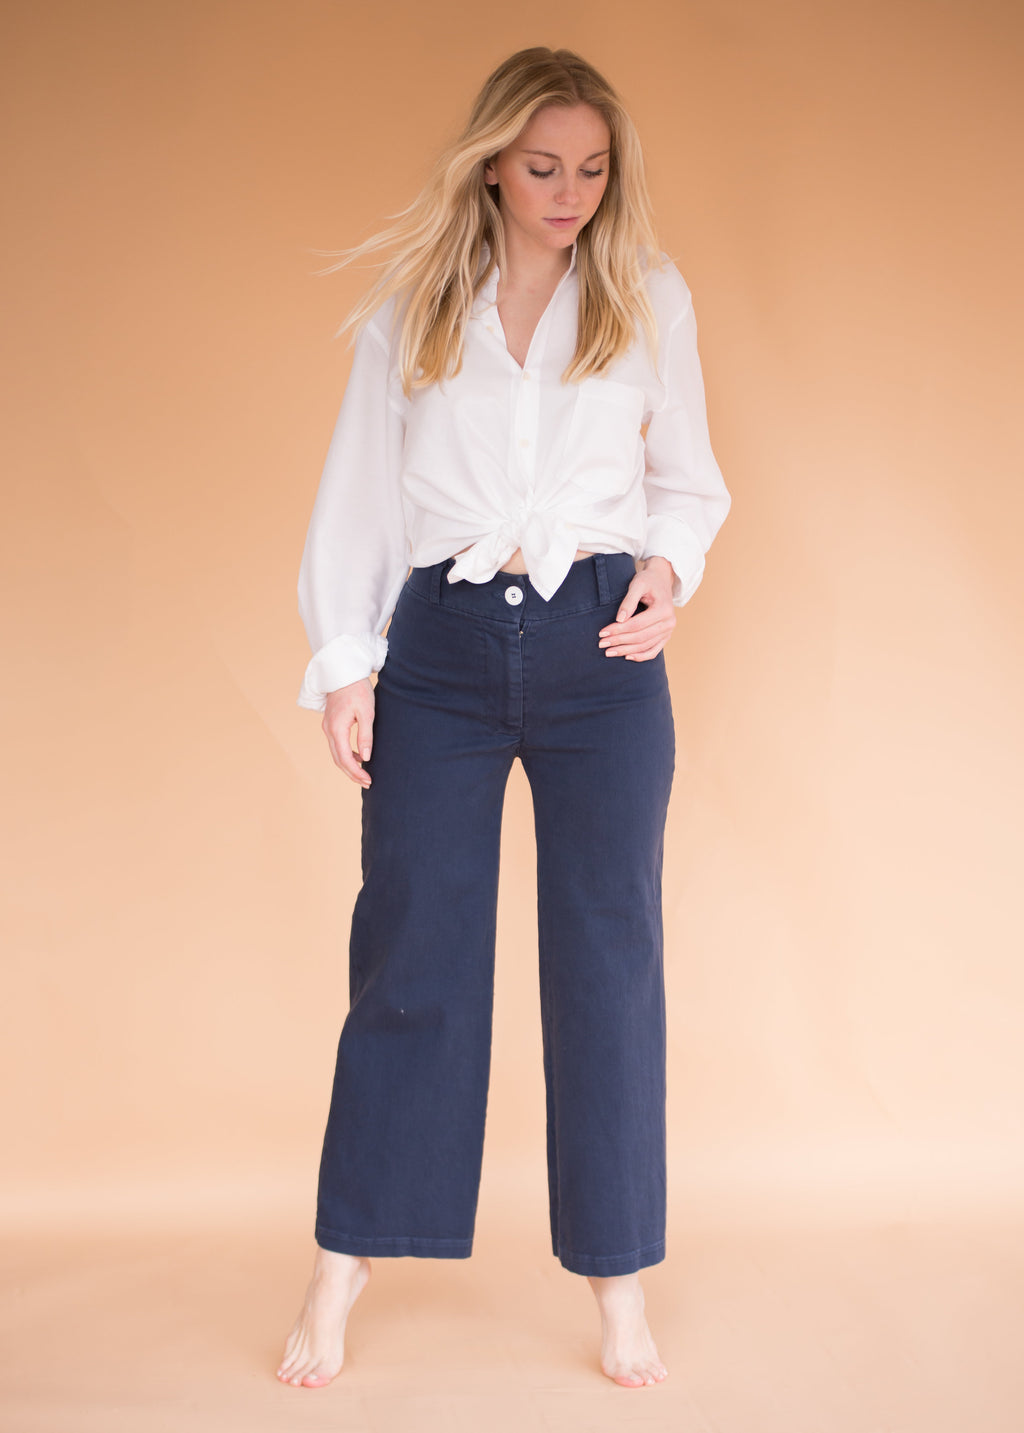 Painter Pant- Indigo - Women's Wide Leg Pants